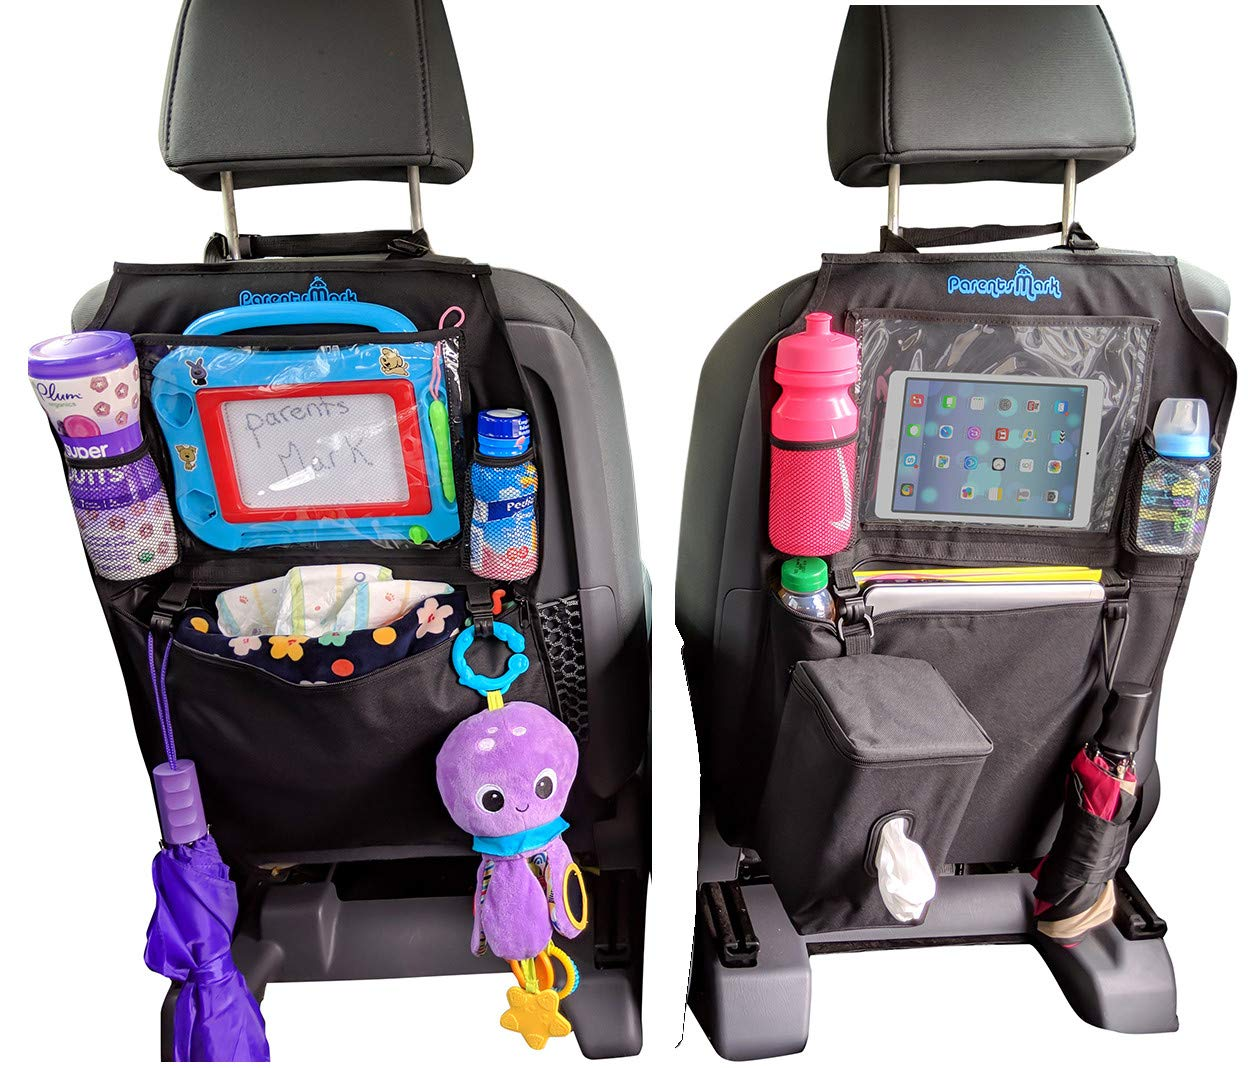 Kids Kick Mats Backseat Organizer by Parents Mark - 2 Pack Waterproof Universal Fit Car Protector - Storage Kicking Mat with Tissue Box - Multiple Pockets, Ipad and Tablet Holder for Toddler and Baby by Parents Mark